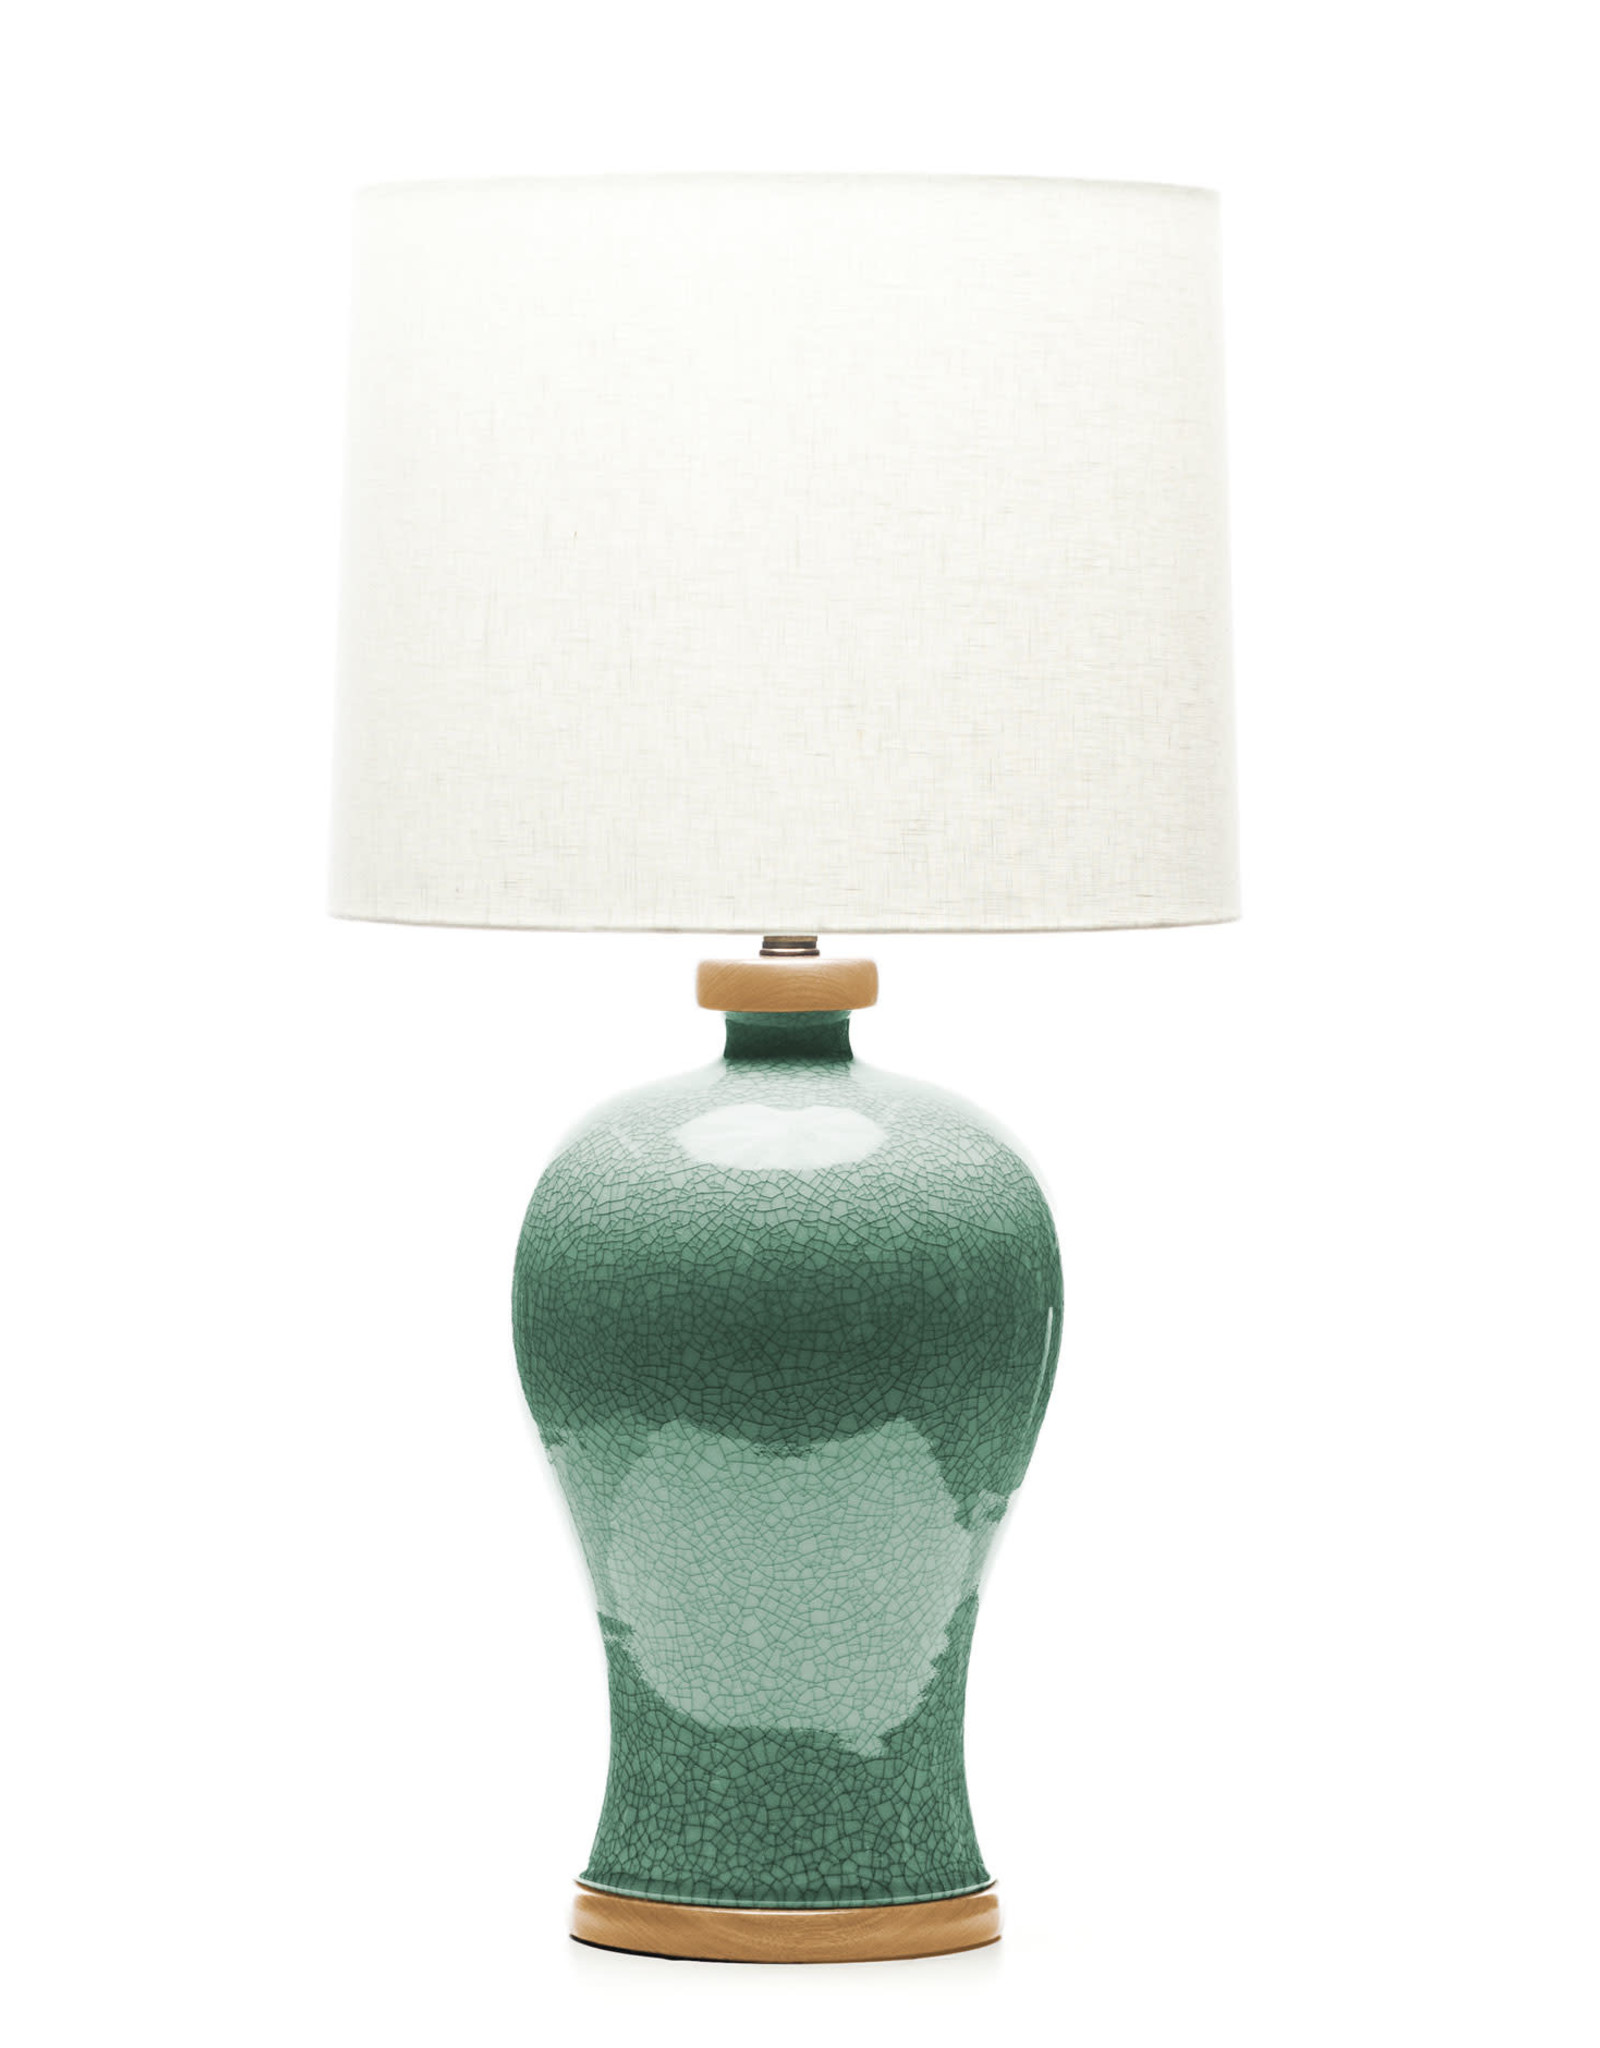 Lawrence & Scott Dashiell Table Lamp in Aquamarine Crackle with Oak Base